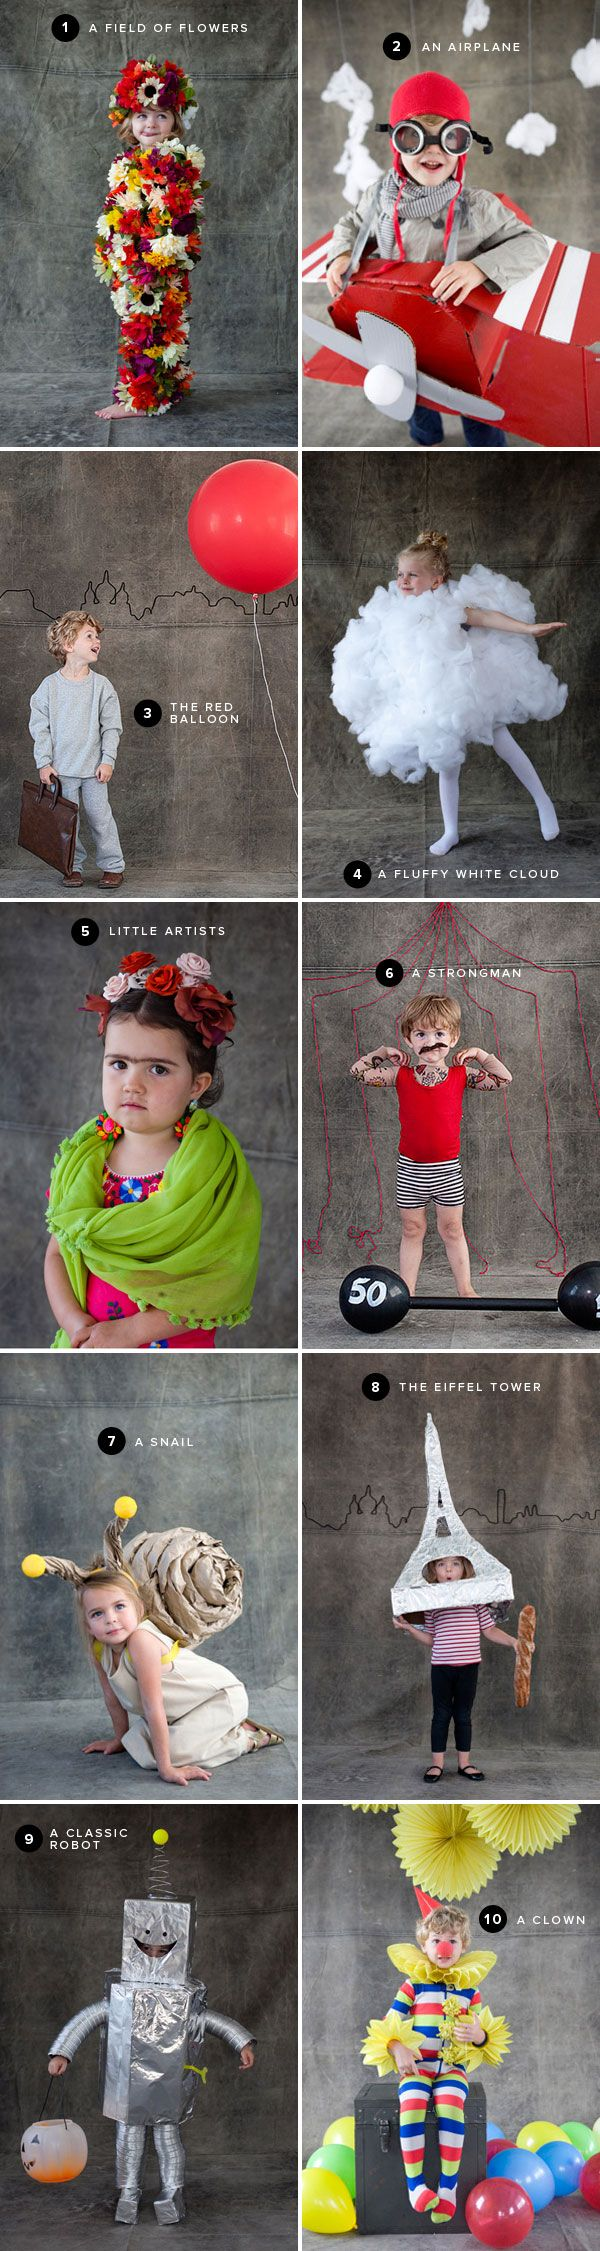 Diy kids halloween costume ideas halloween pinterest for Diy halloween costume ideas for kids